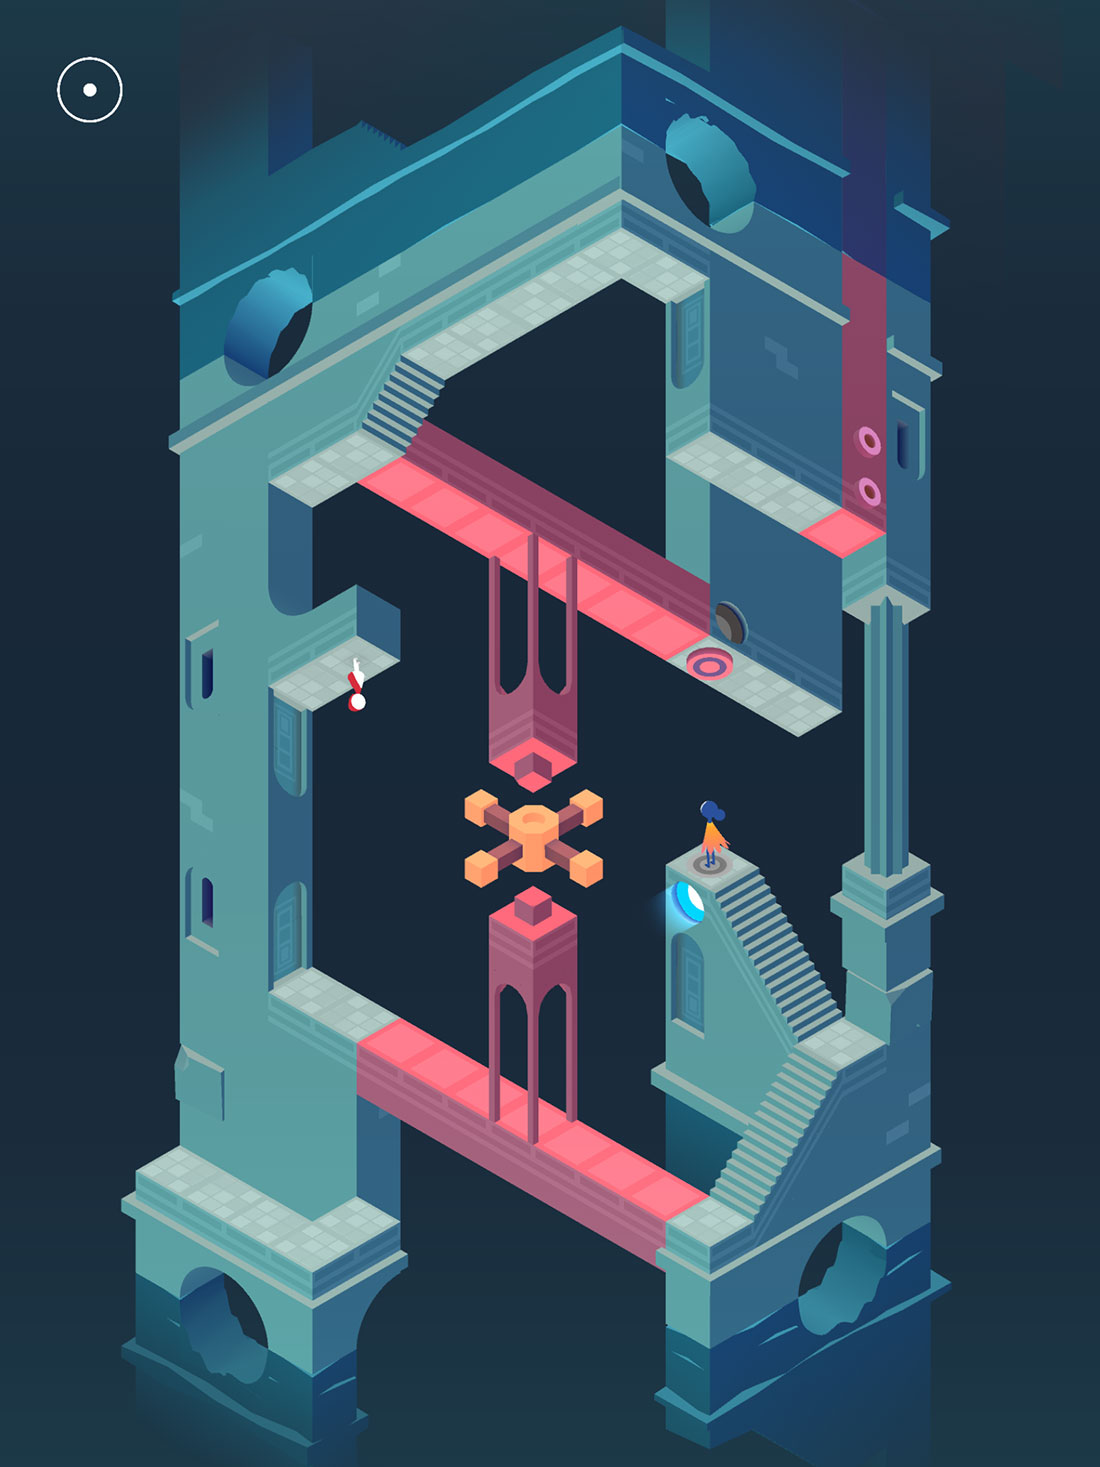 Monument Valley 2 screenshot showing a princess standing inside a reflected room of switches and walkways.